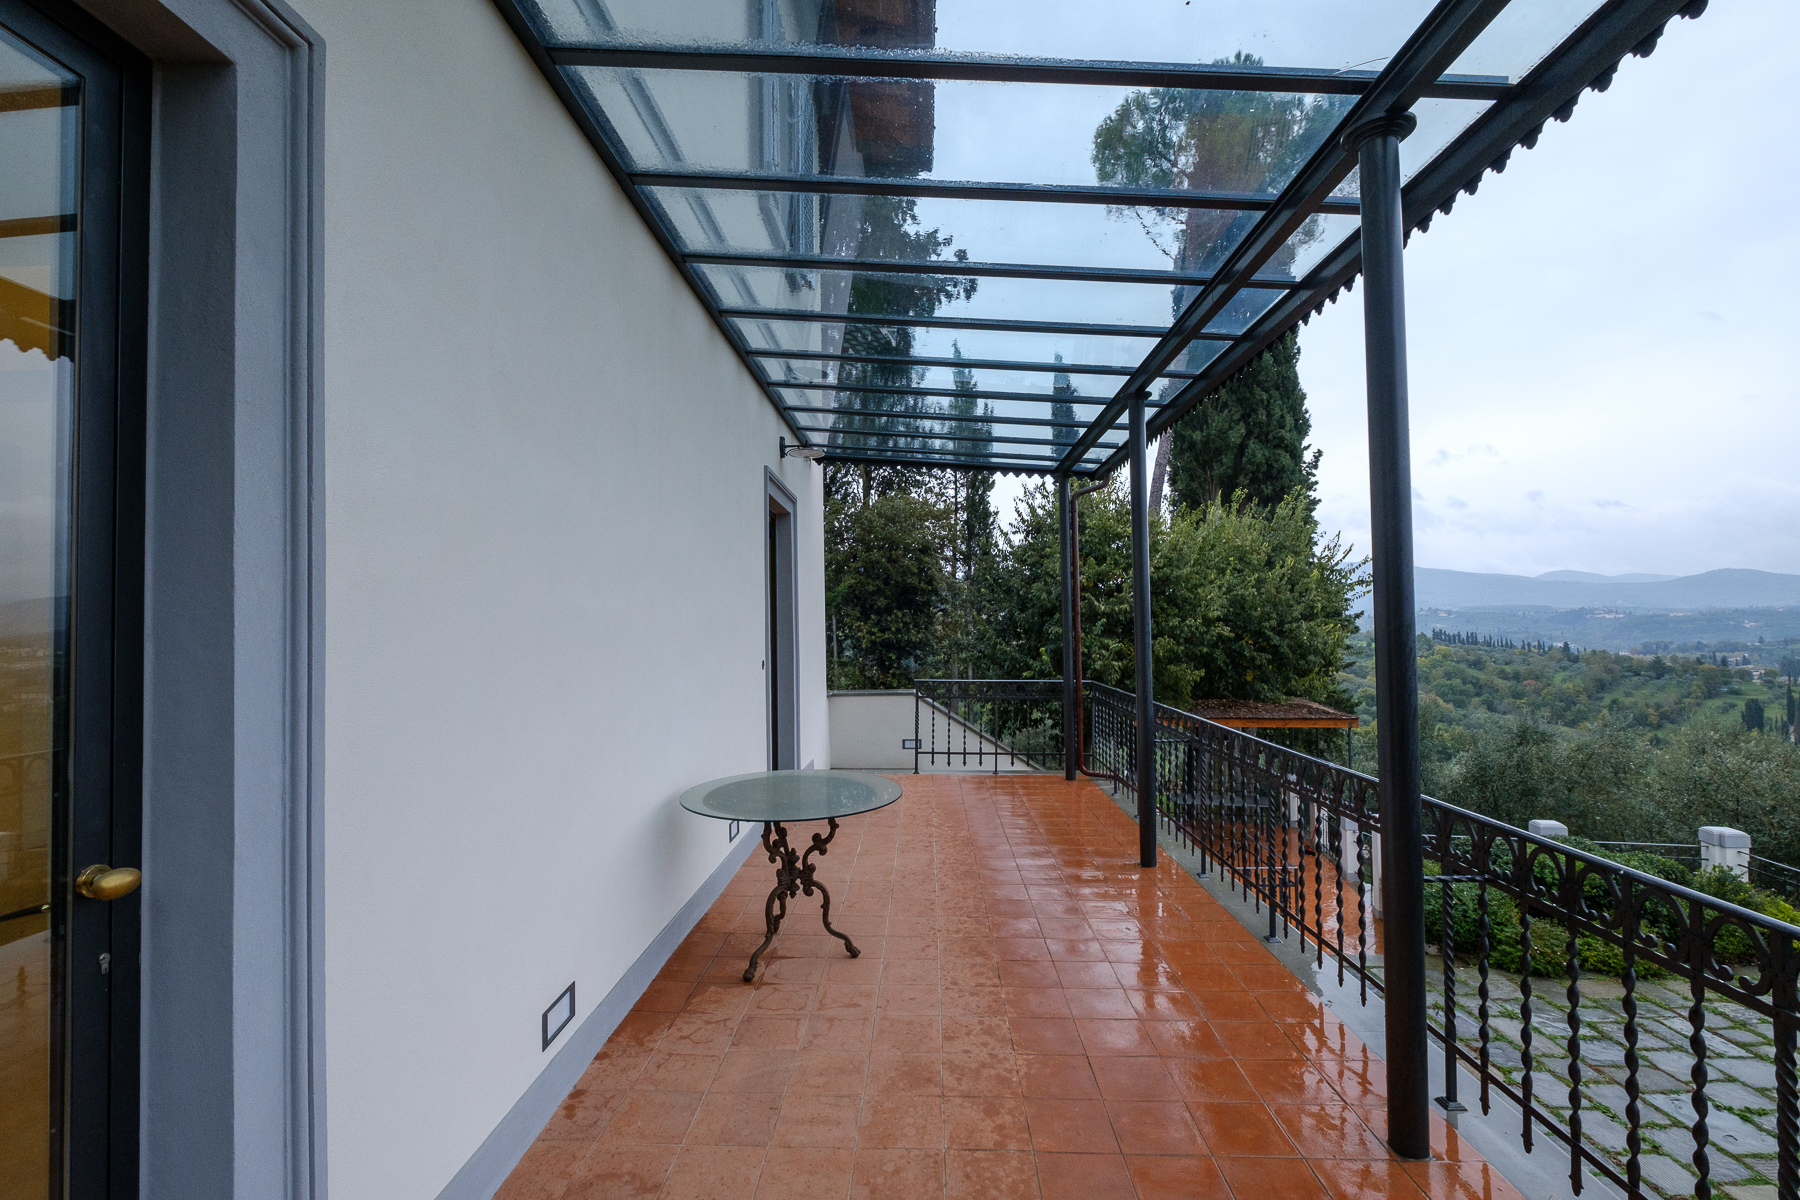 Additional photo for property listing at Splendida villa in affitto vicino Firenze Via Fattucchia Bagno A Ripoli, Firenze 50012 Italia